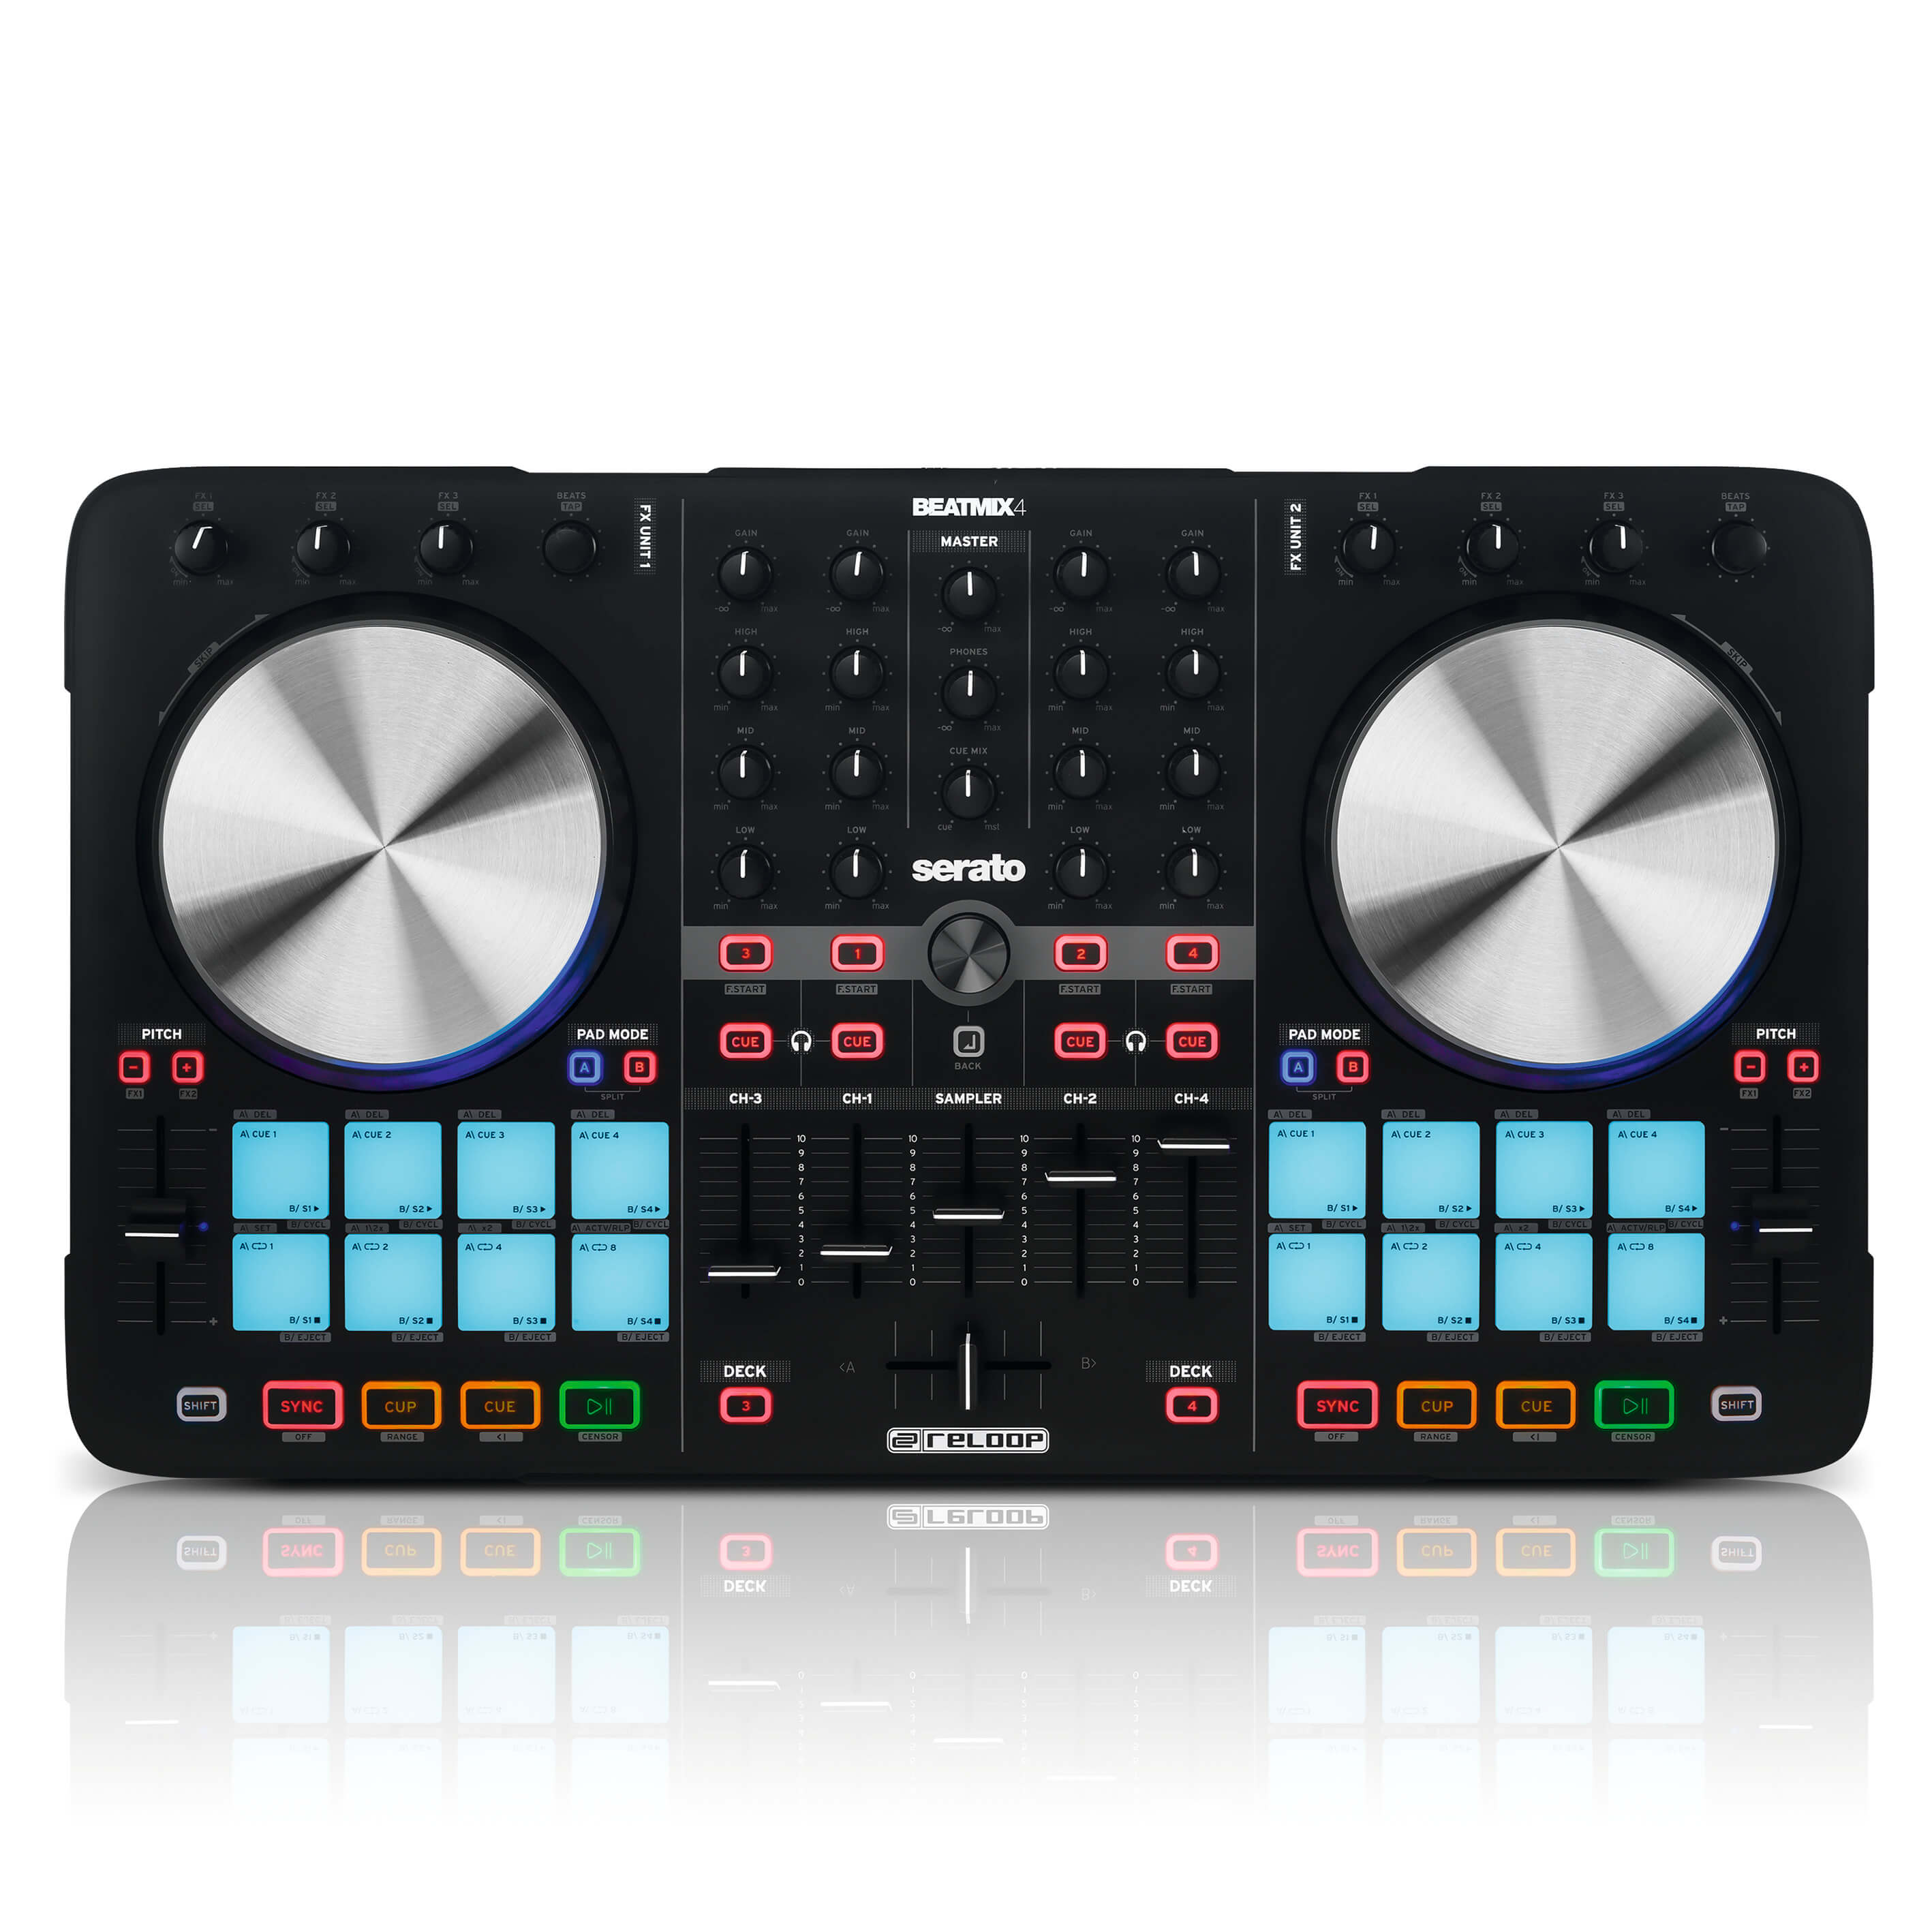 Mini Mesa Dj Reloop Beatmix 4 Professional 4 Channel Dj Controller With